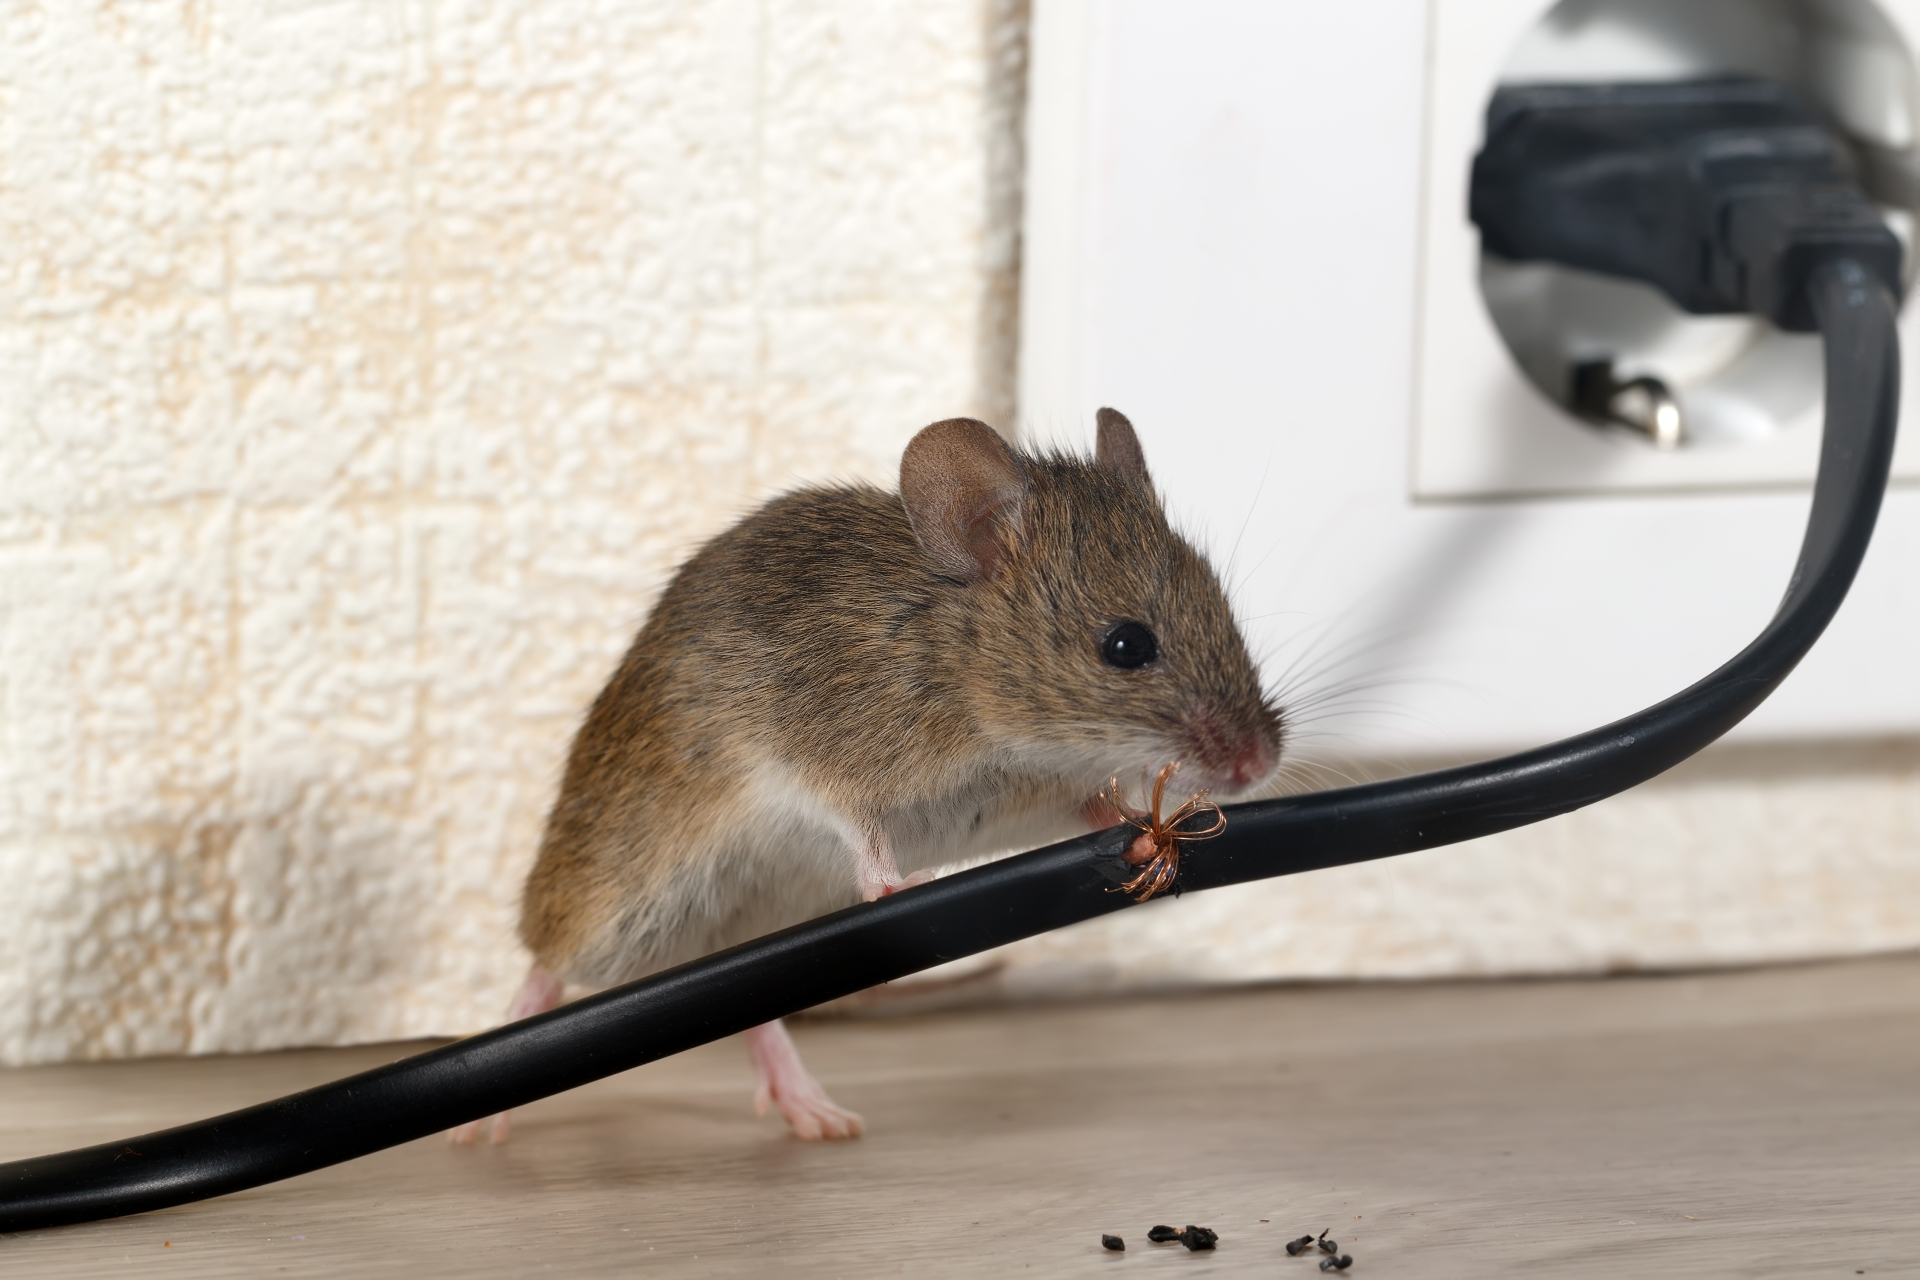 Mice Infestation, Pest Control in Balham, SW12. Call Now 020 8166 9746